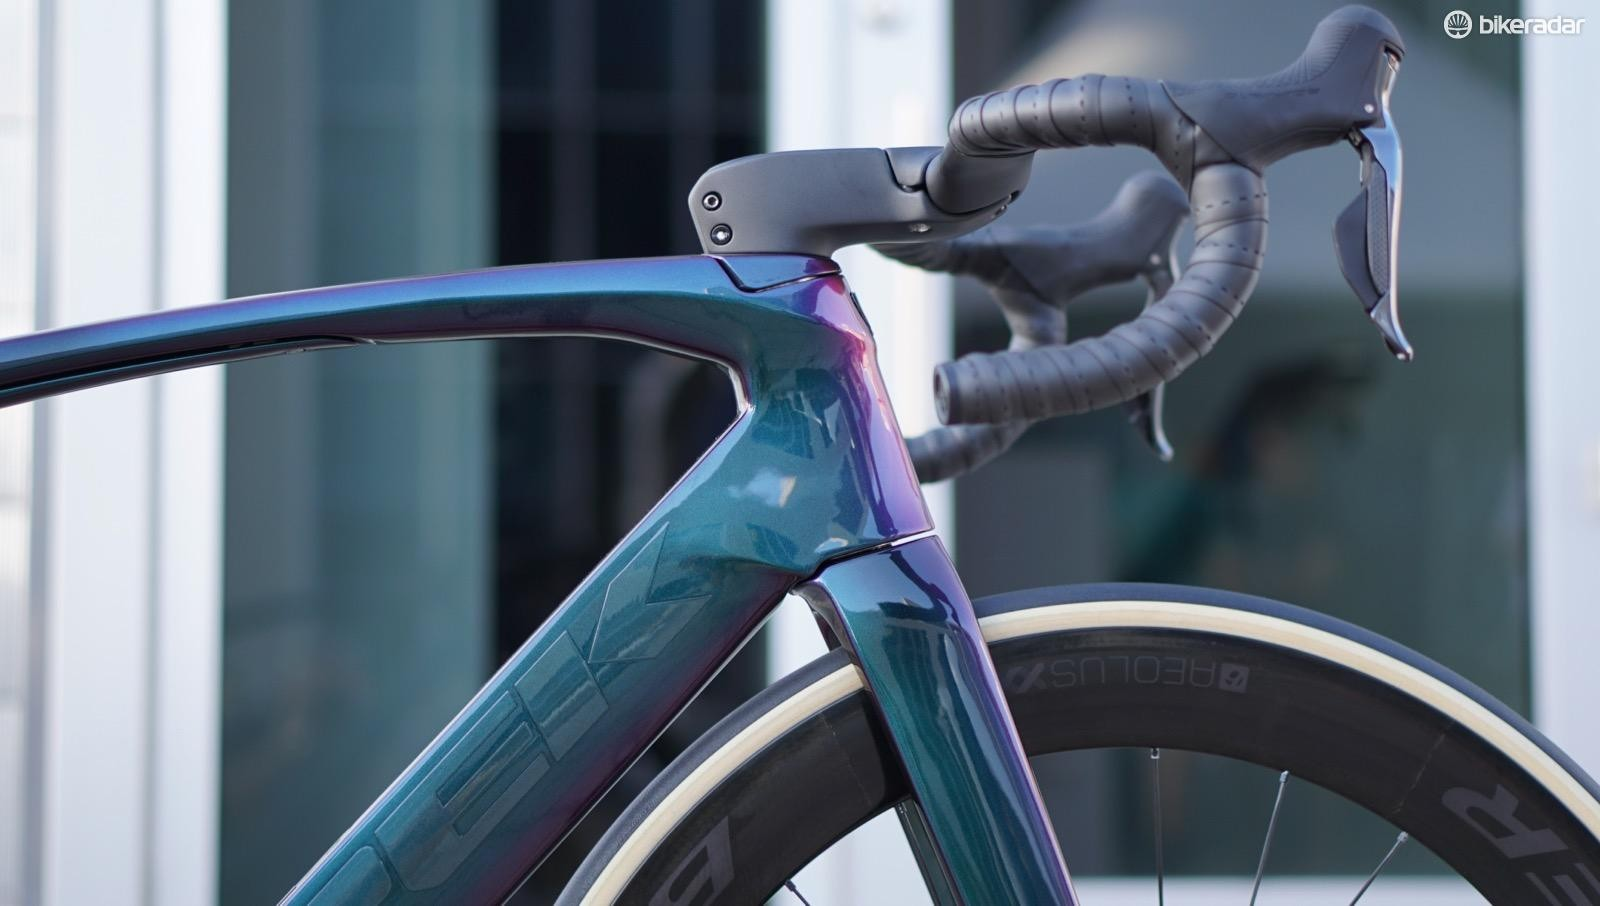 The new Madone has what Trek calls the H1.5 fit — halfway between the ultra-low H1 and the more upright H2